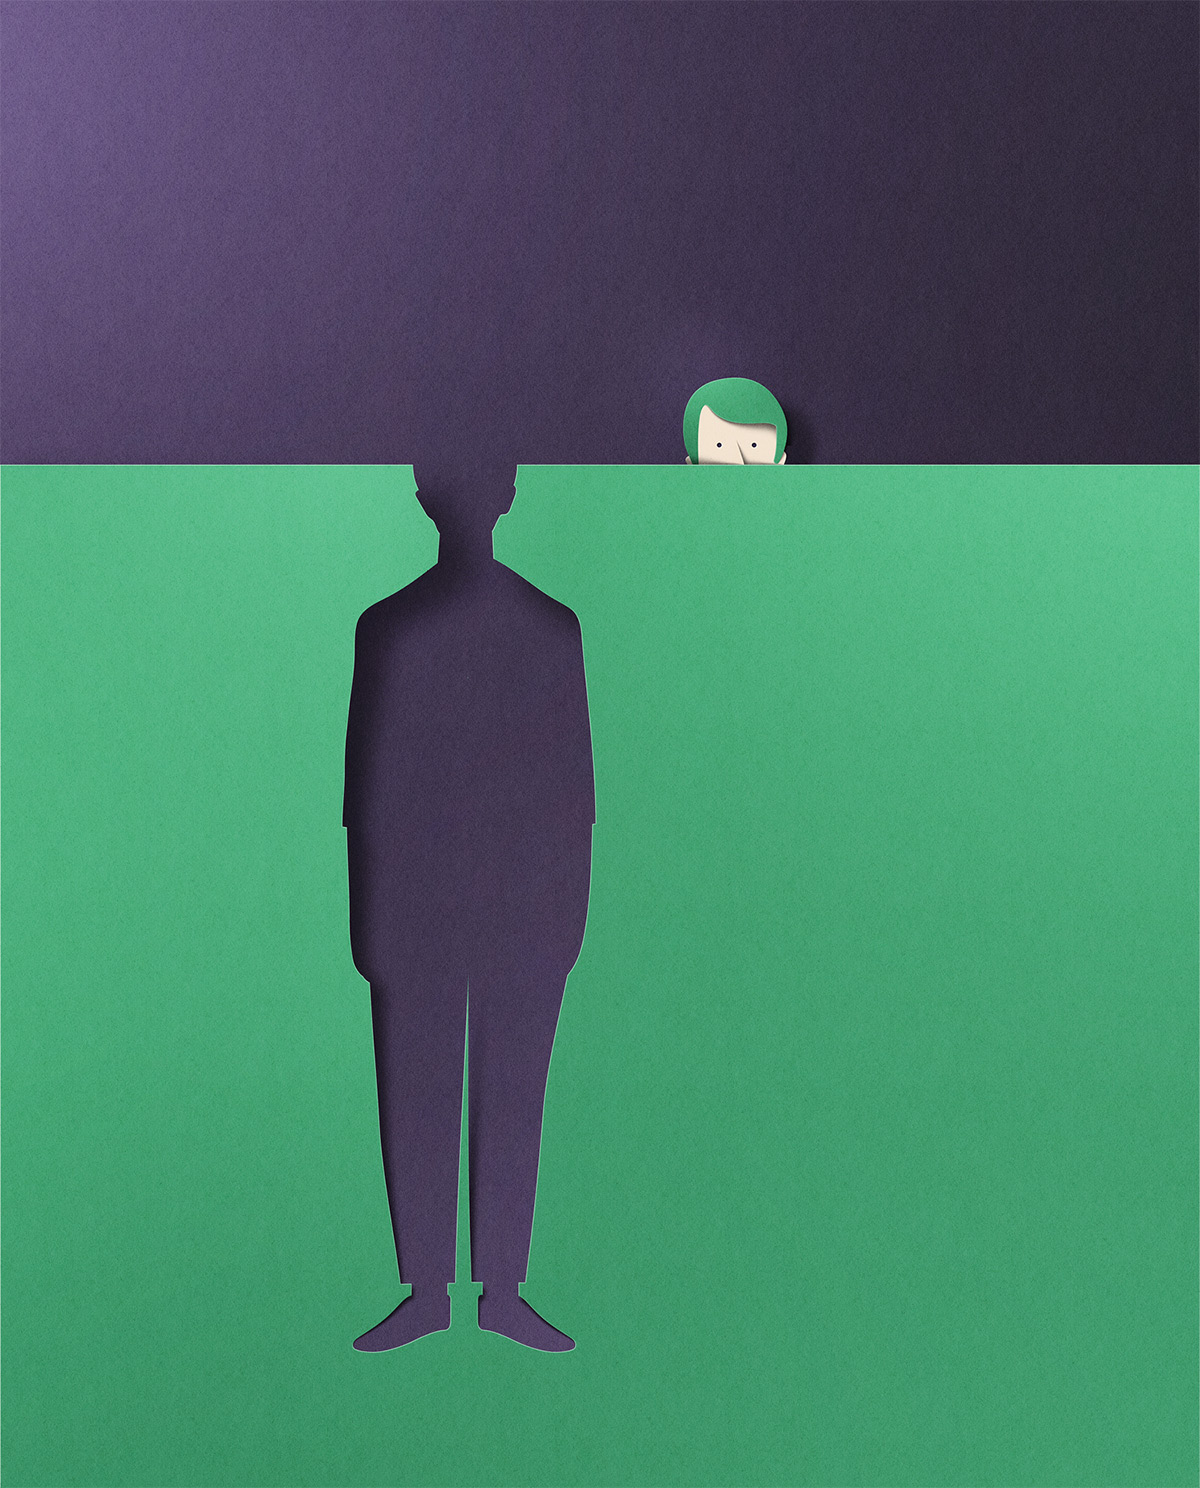 New Paper Textured Editorial Illustrations by Eiko Ojala ...